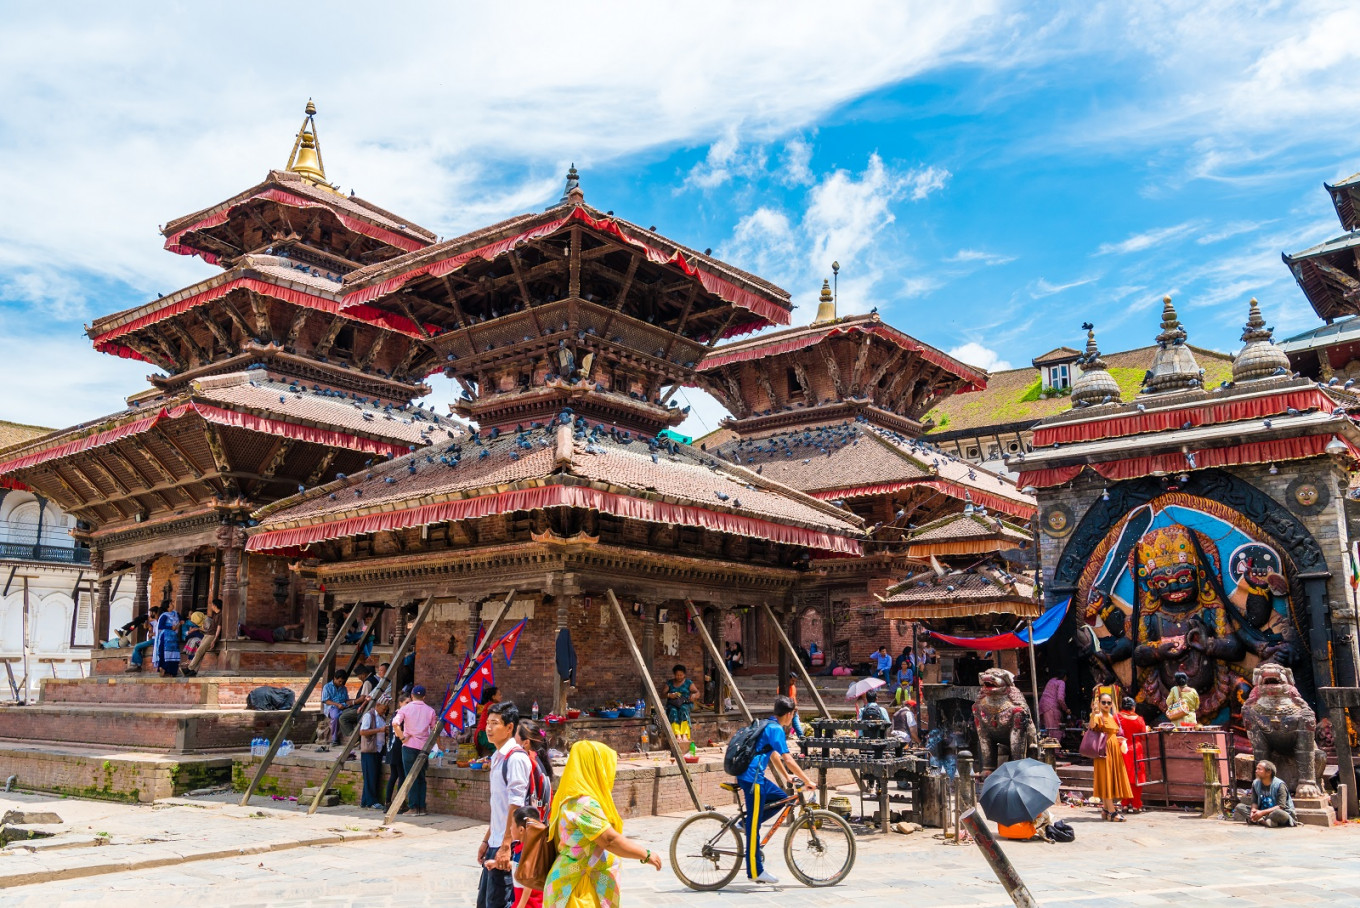 Tourism in Nepal During COVID-19